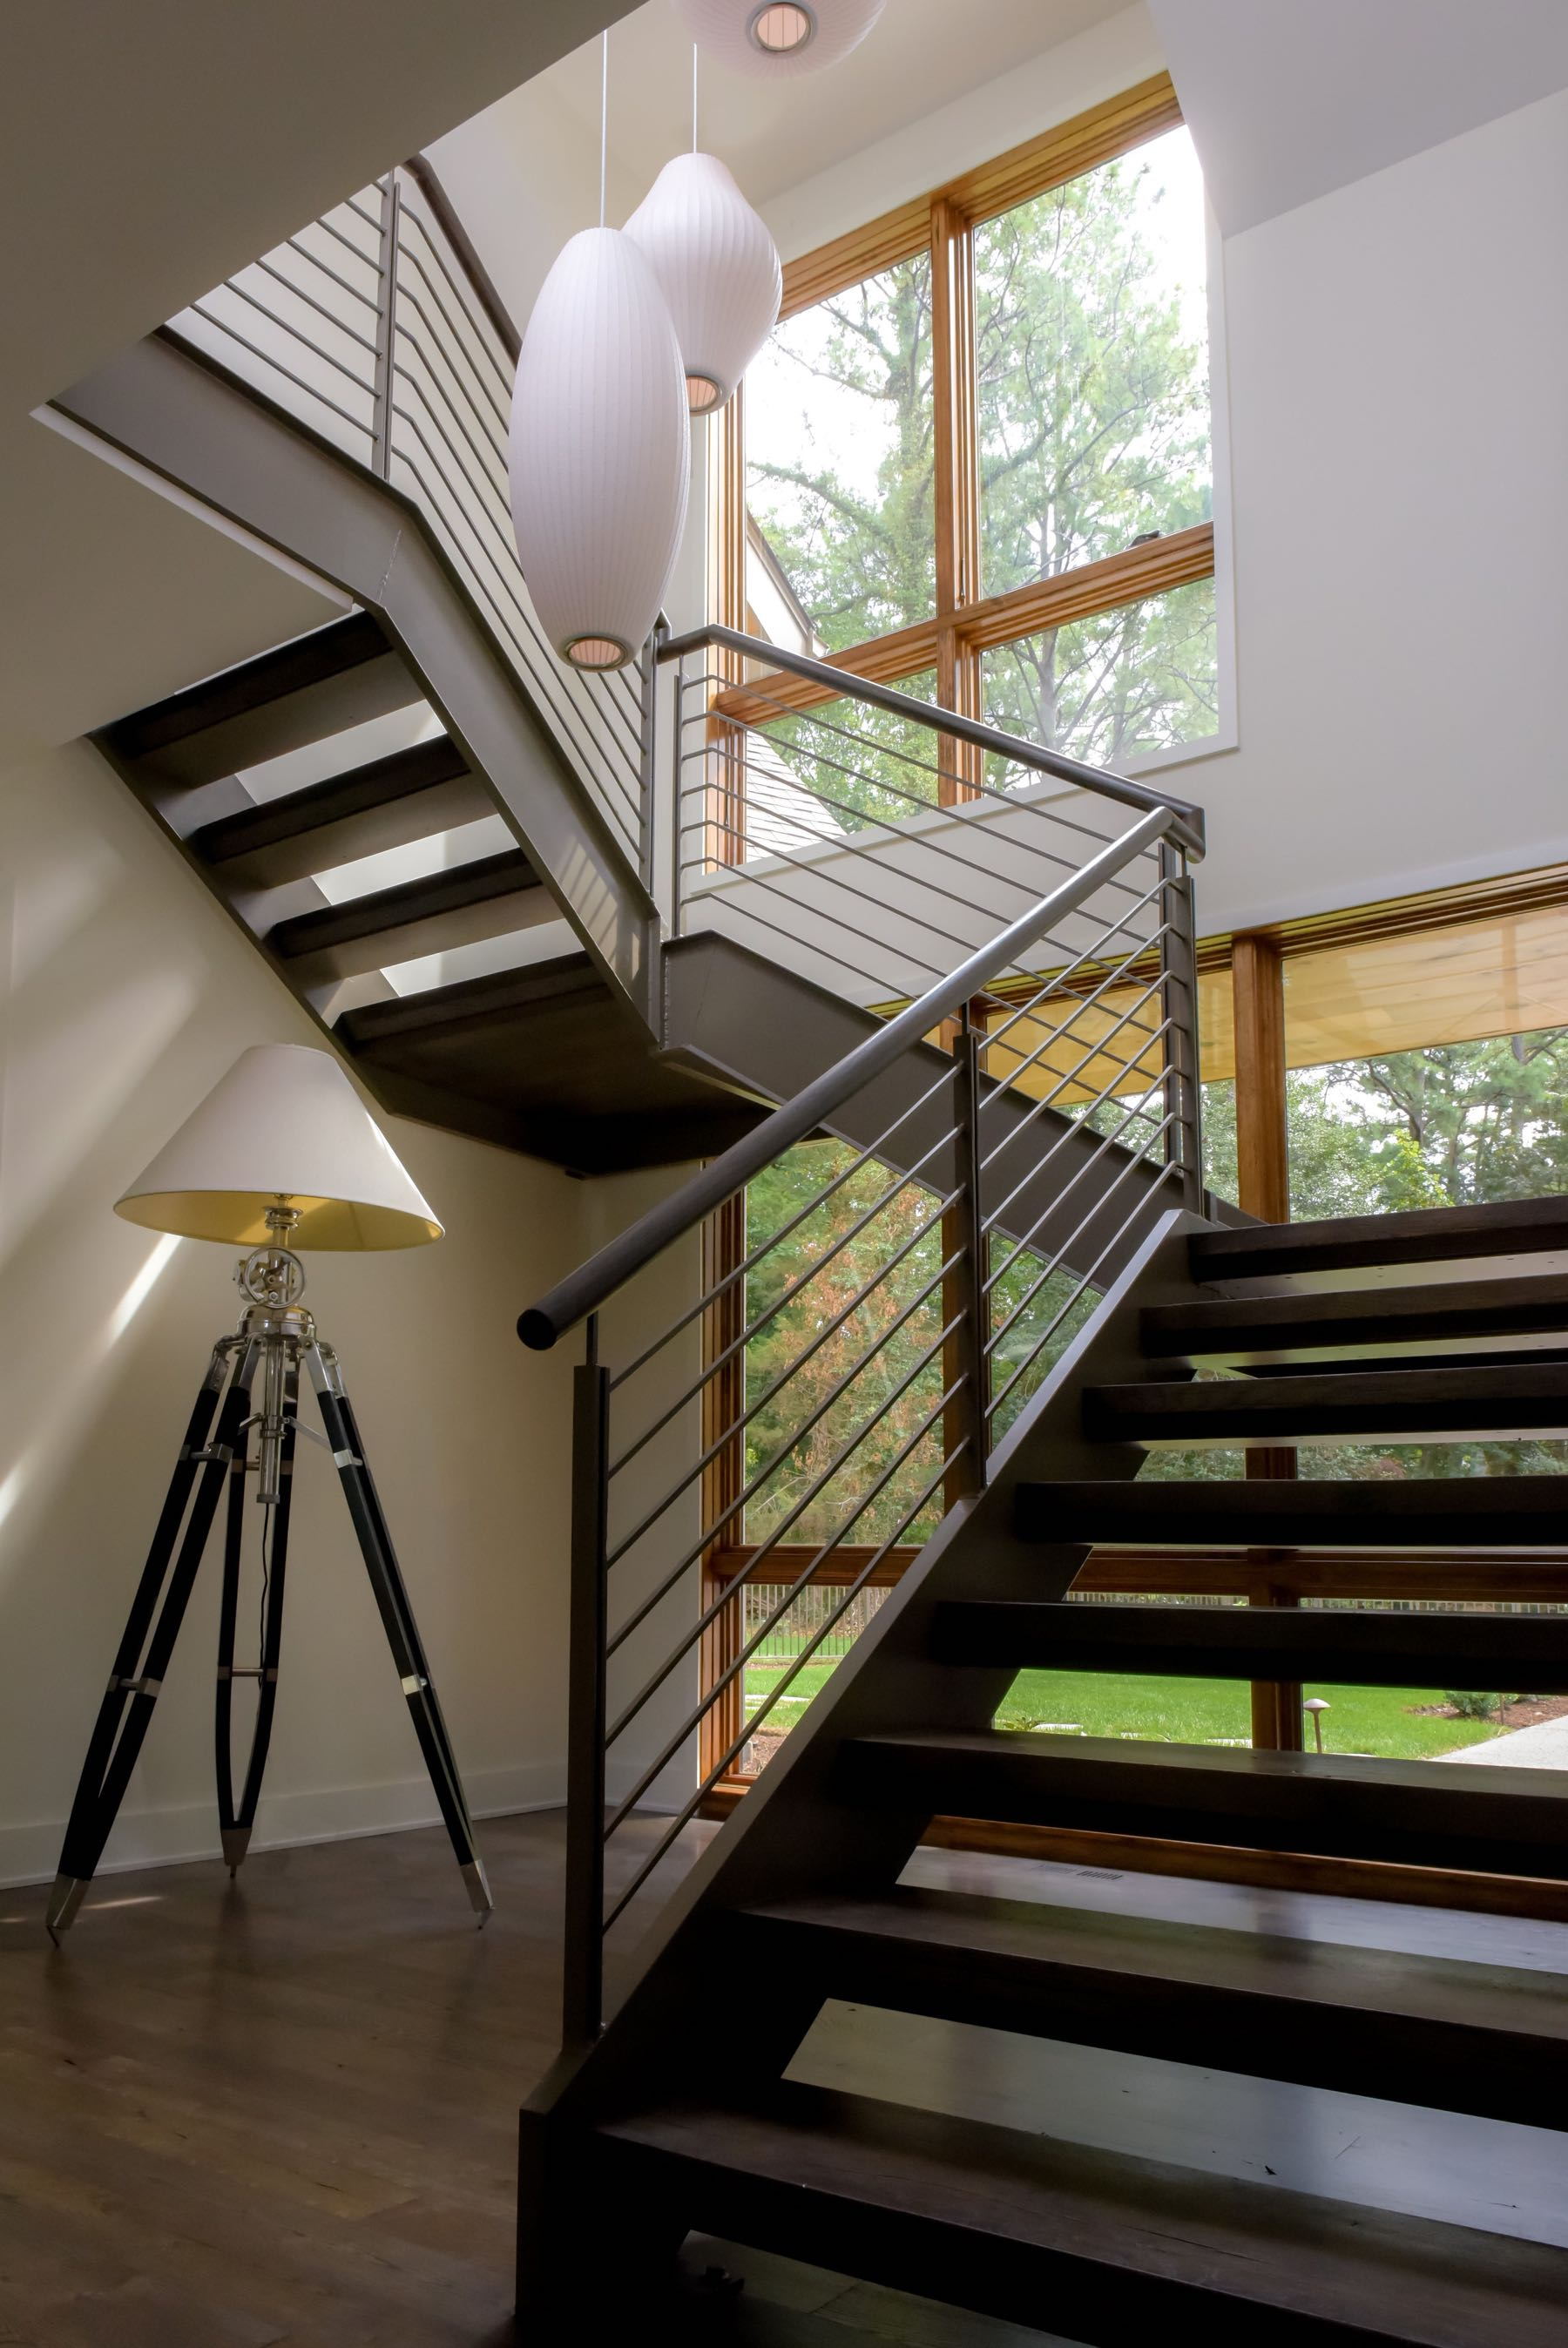 | work performed while at Barnes Vanze Architects | Kam Photography